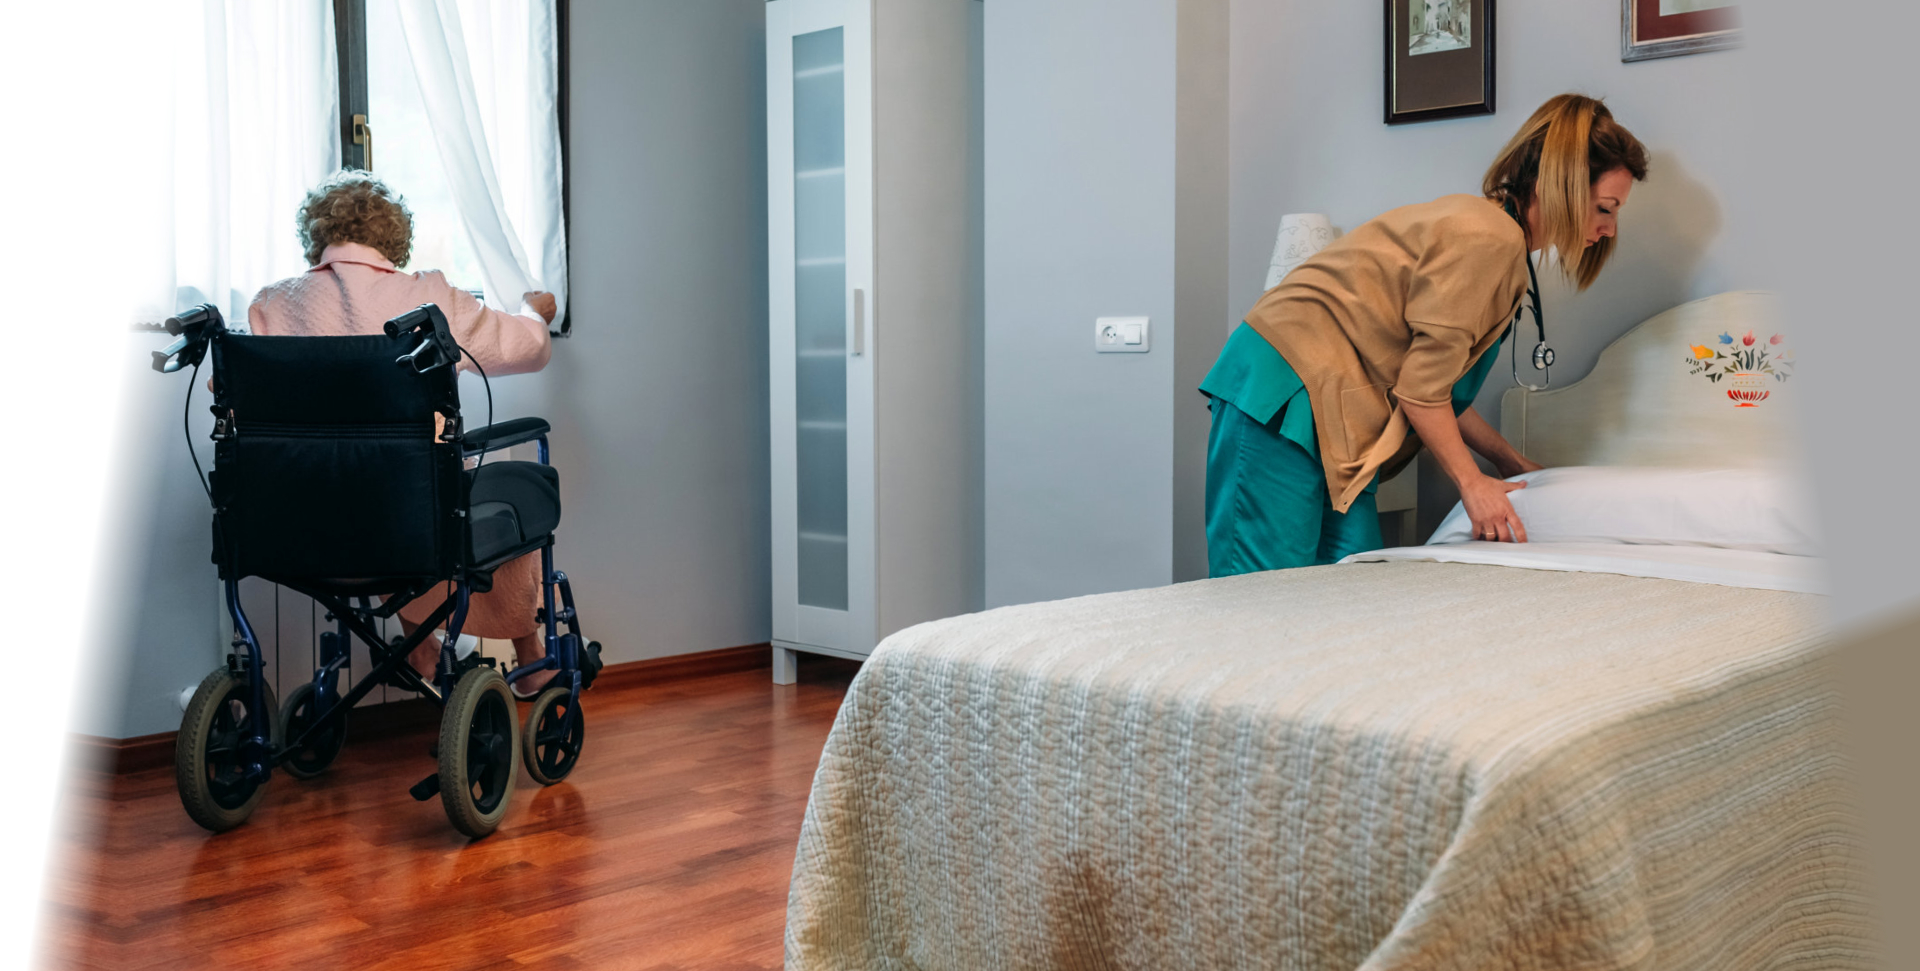 Caregiver making the bed of an elderly patient in a nursing home